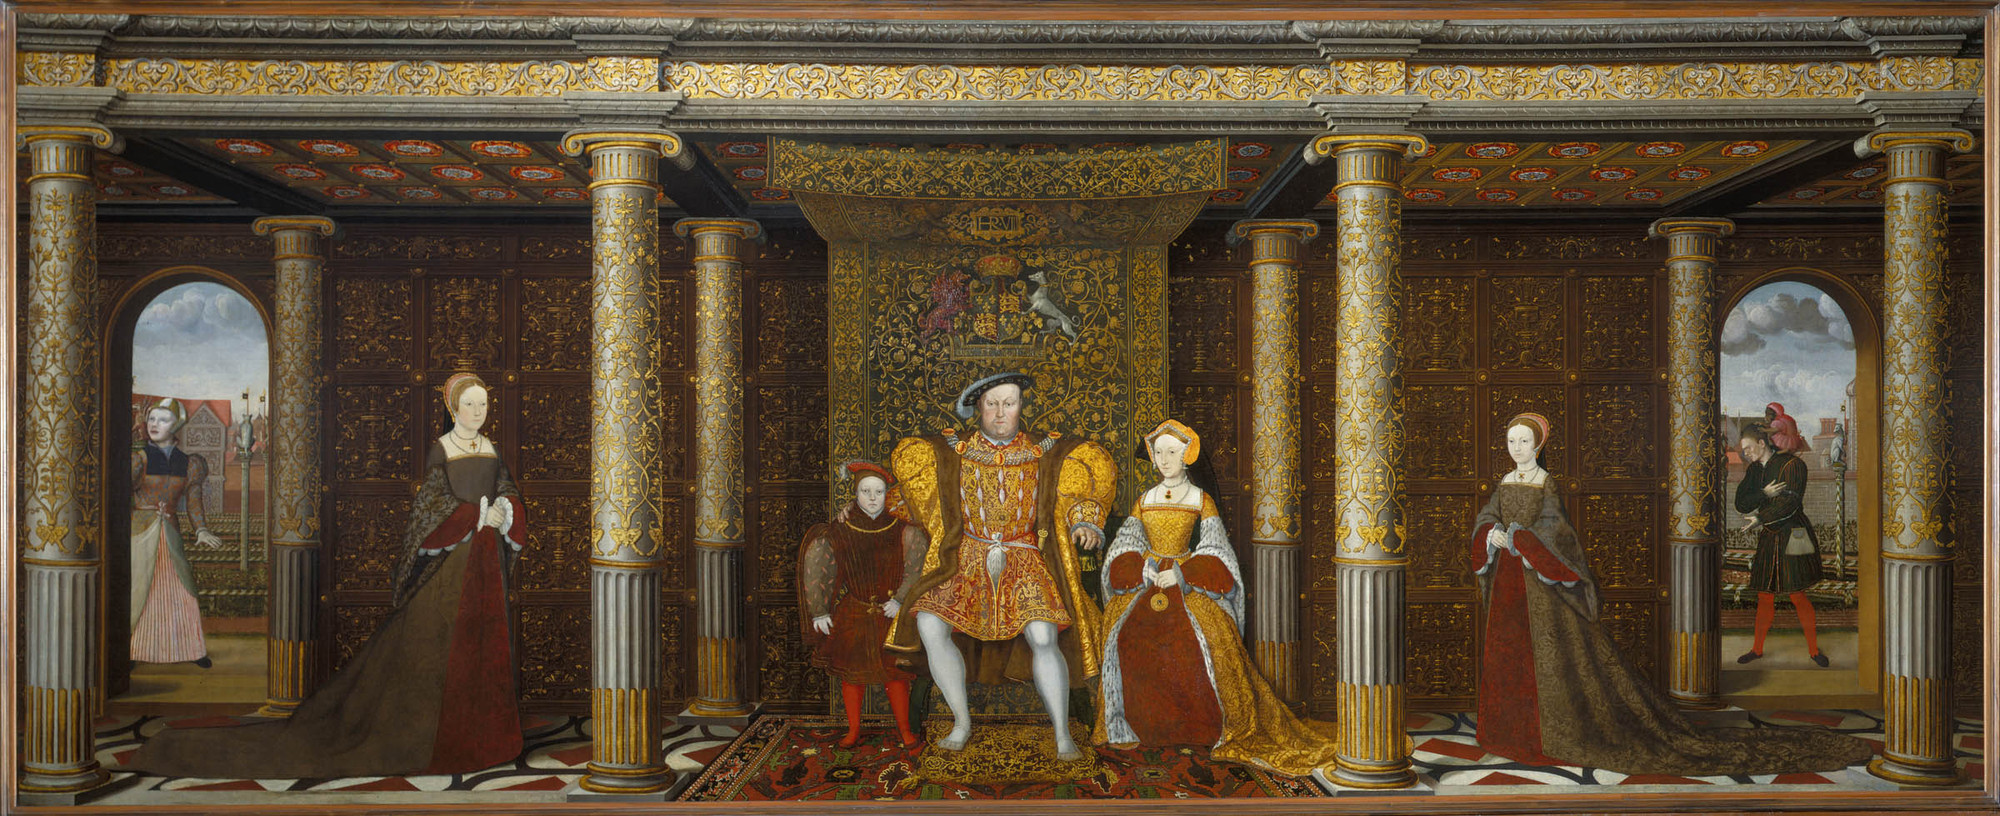 The Family of Henry VIII, oil on canvas, c. 1545